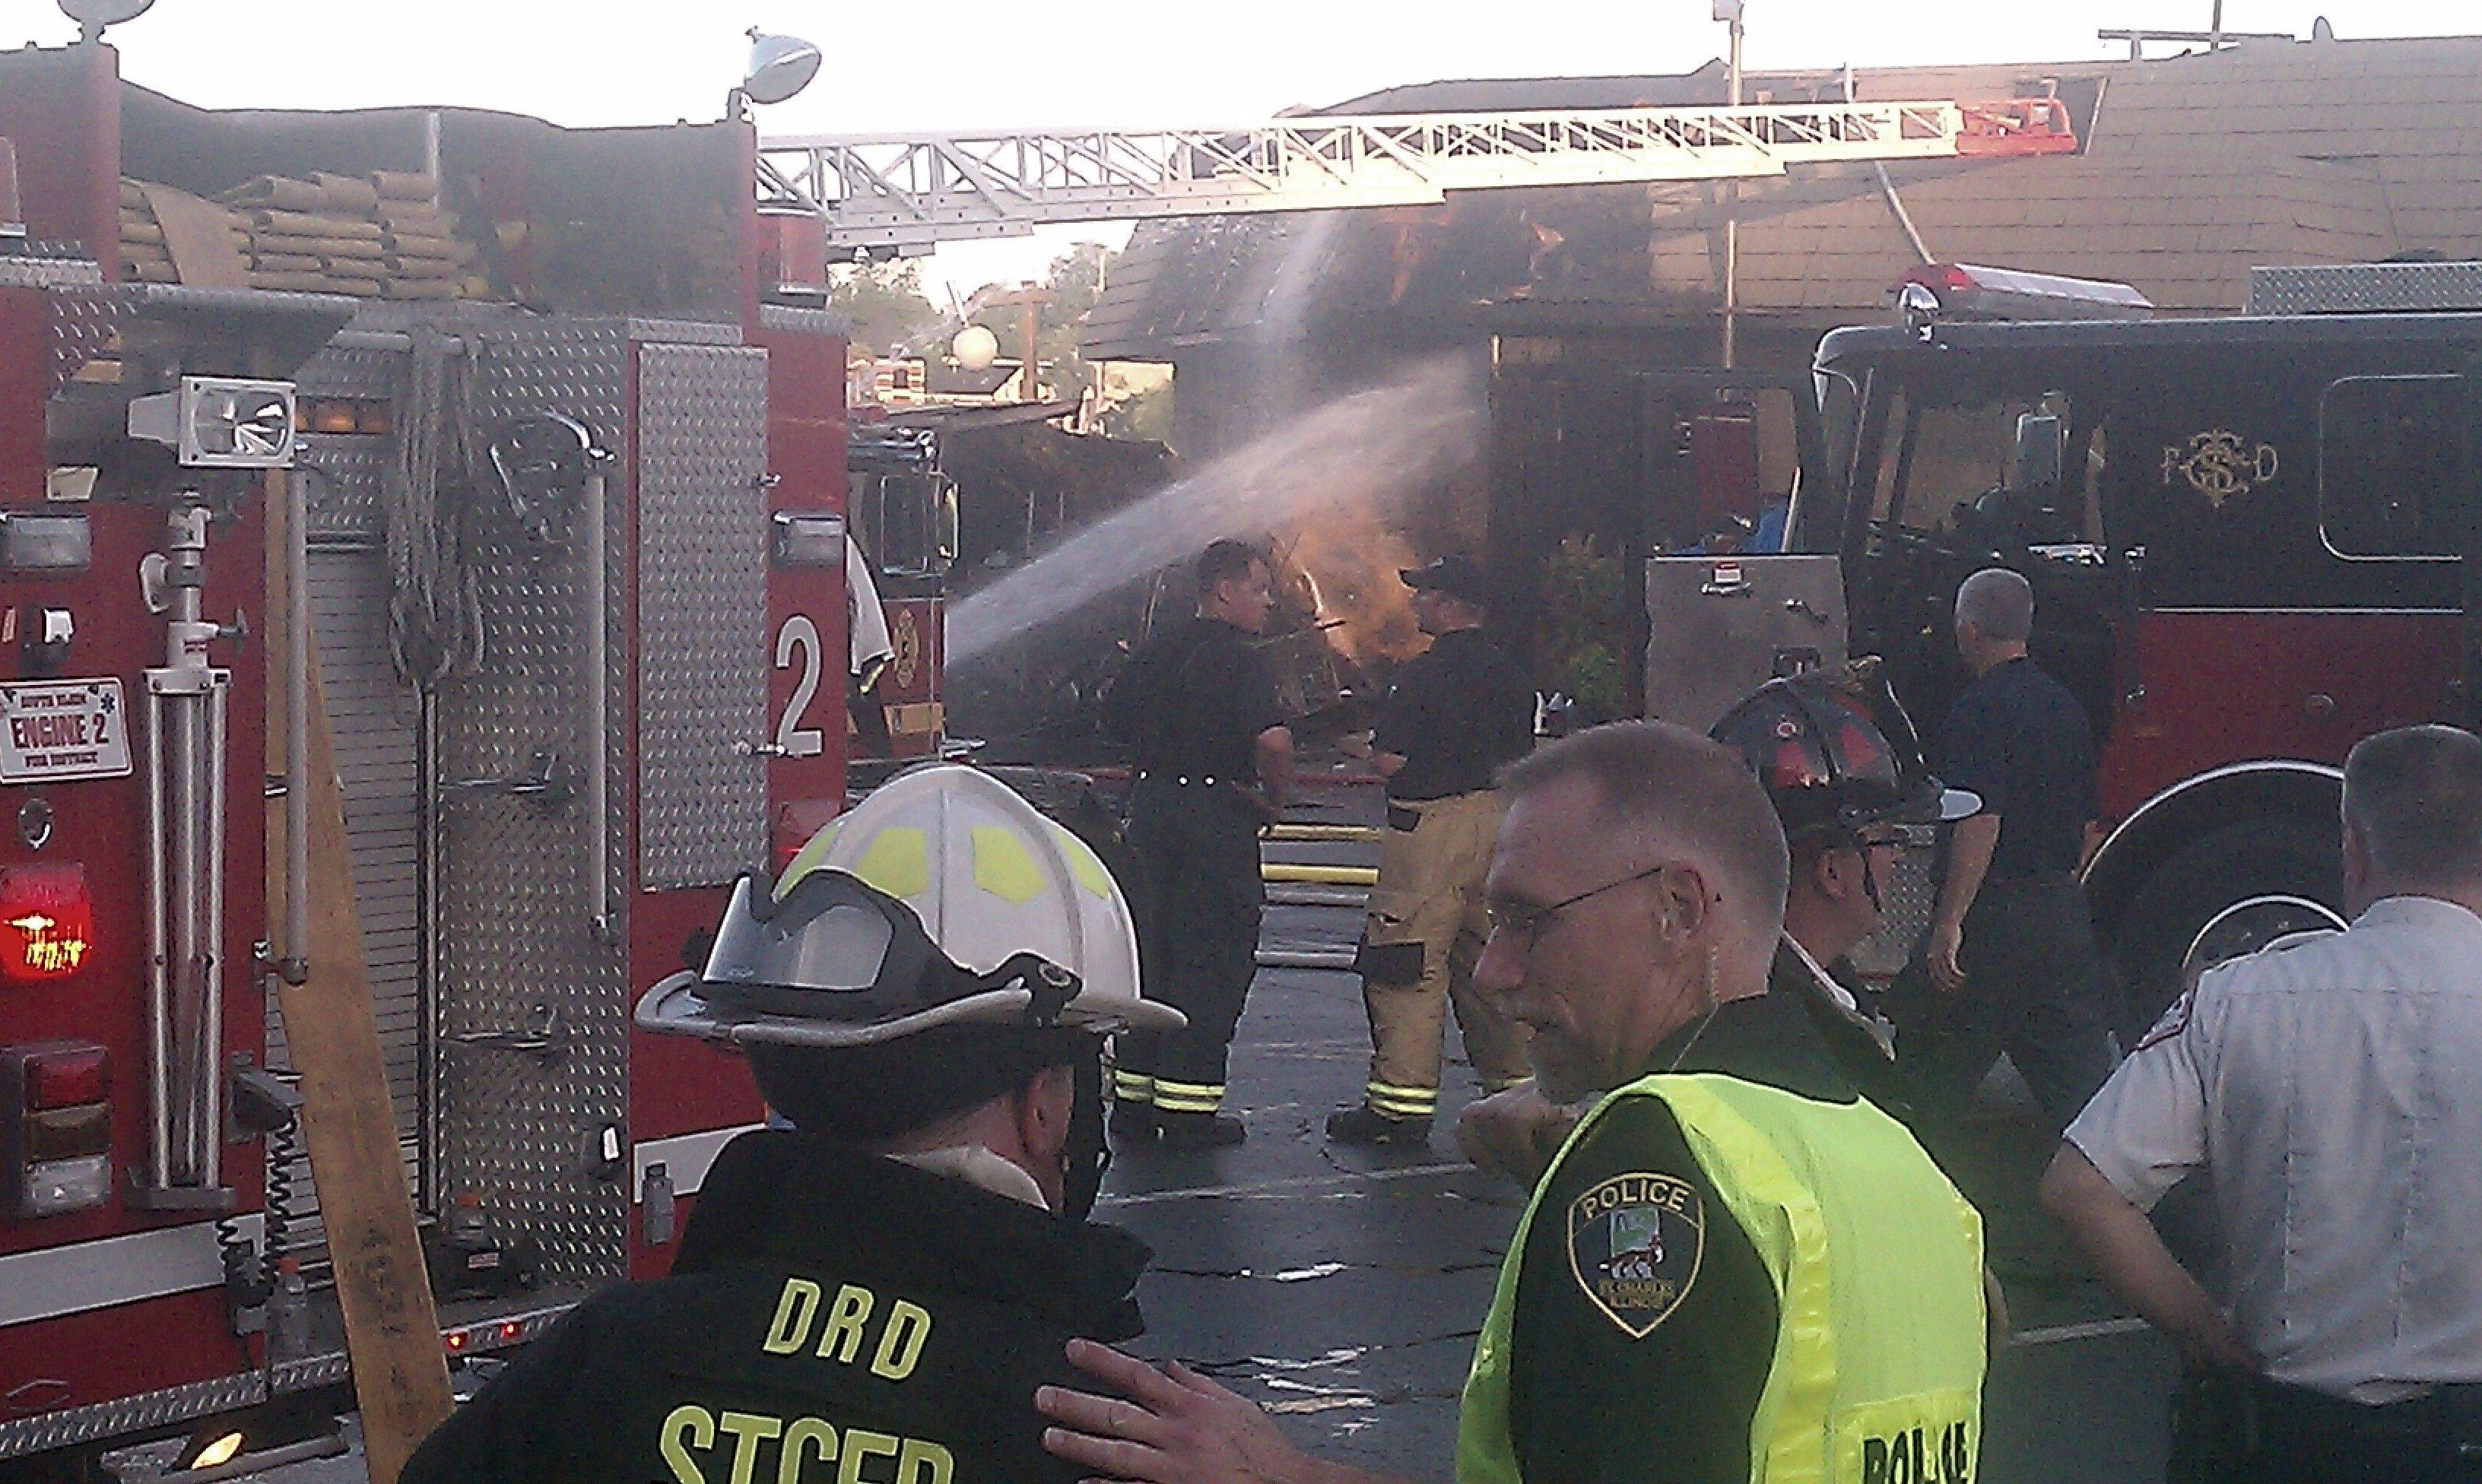 Firefighters battle a blaze at Salerno's on the Fox restaurant Wednesday in St. Charles.